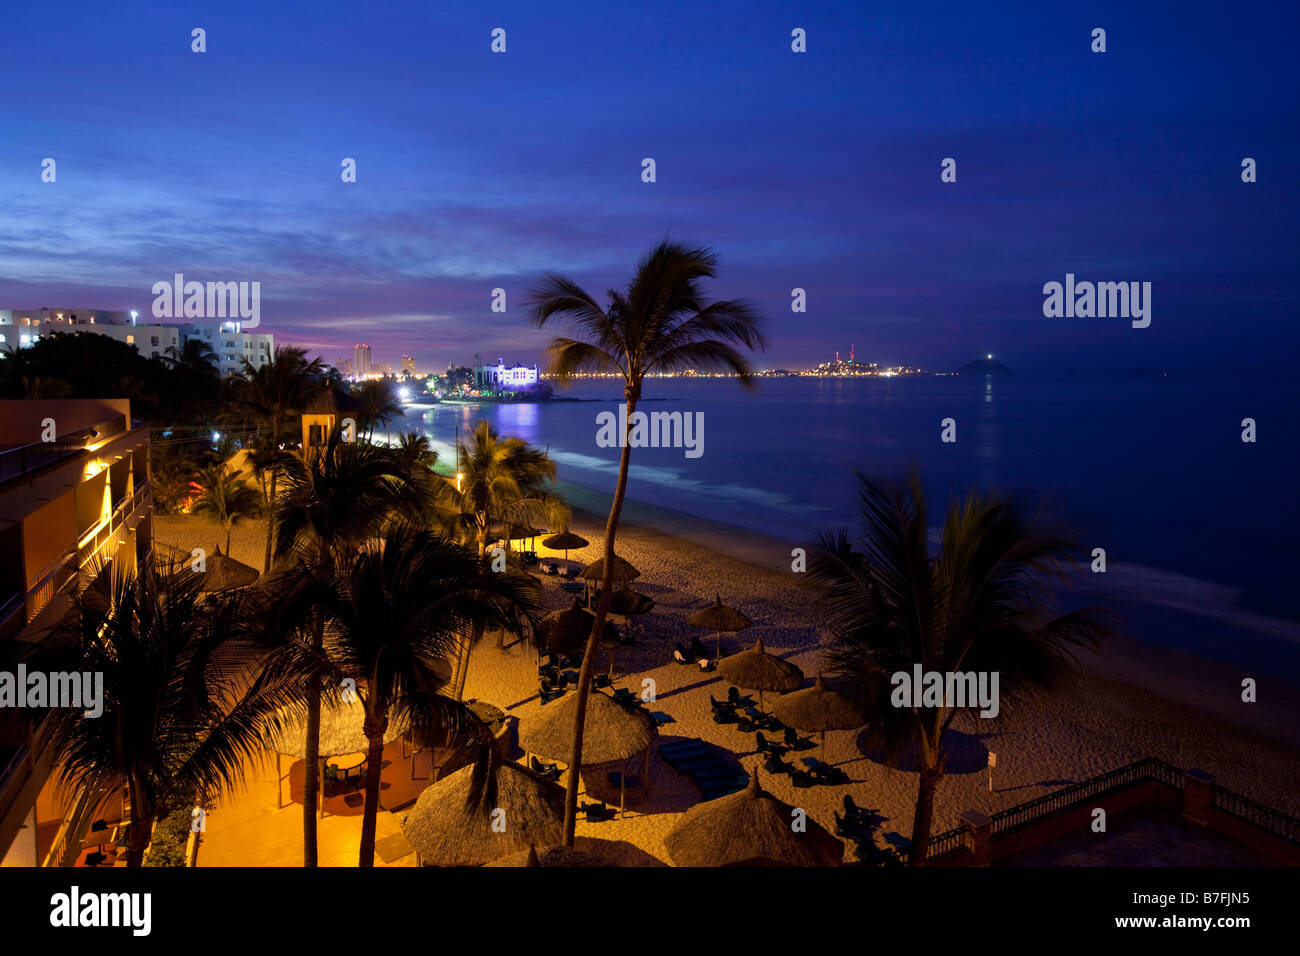 Mazatlan Sinaloa Mexico Stock Photo